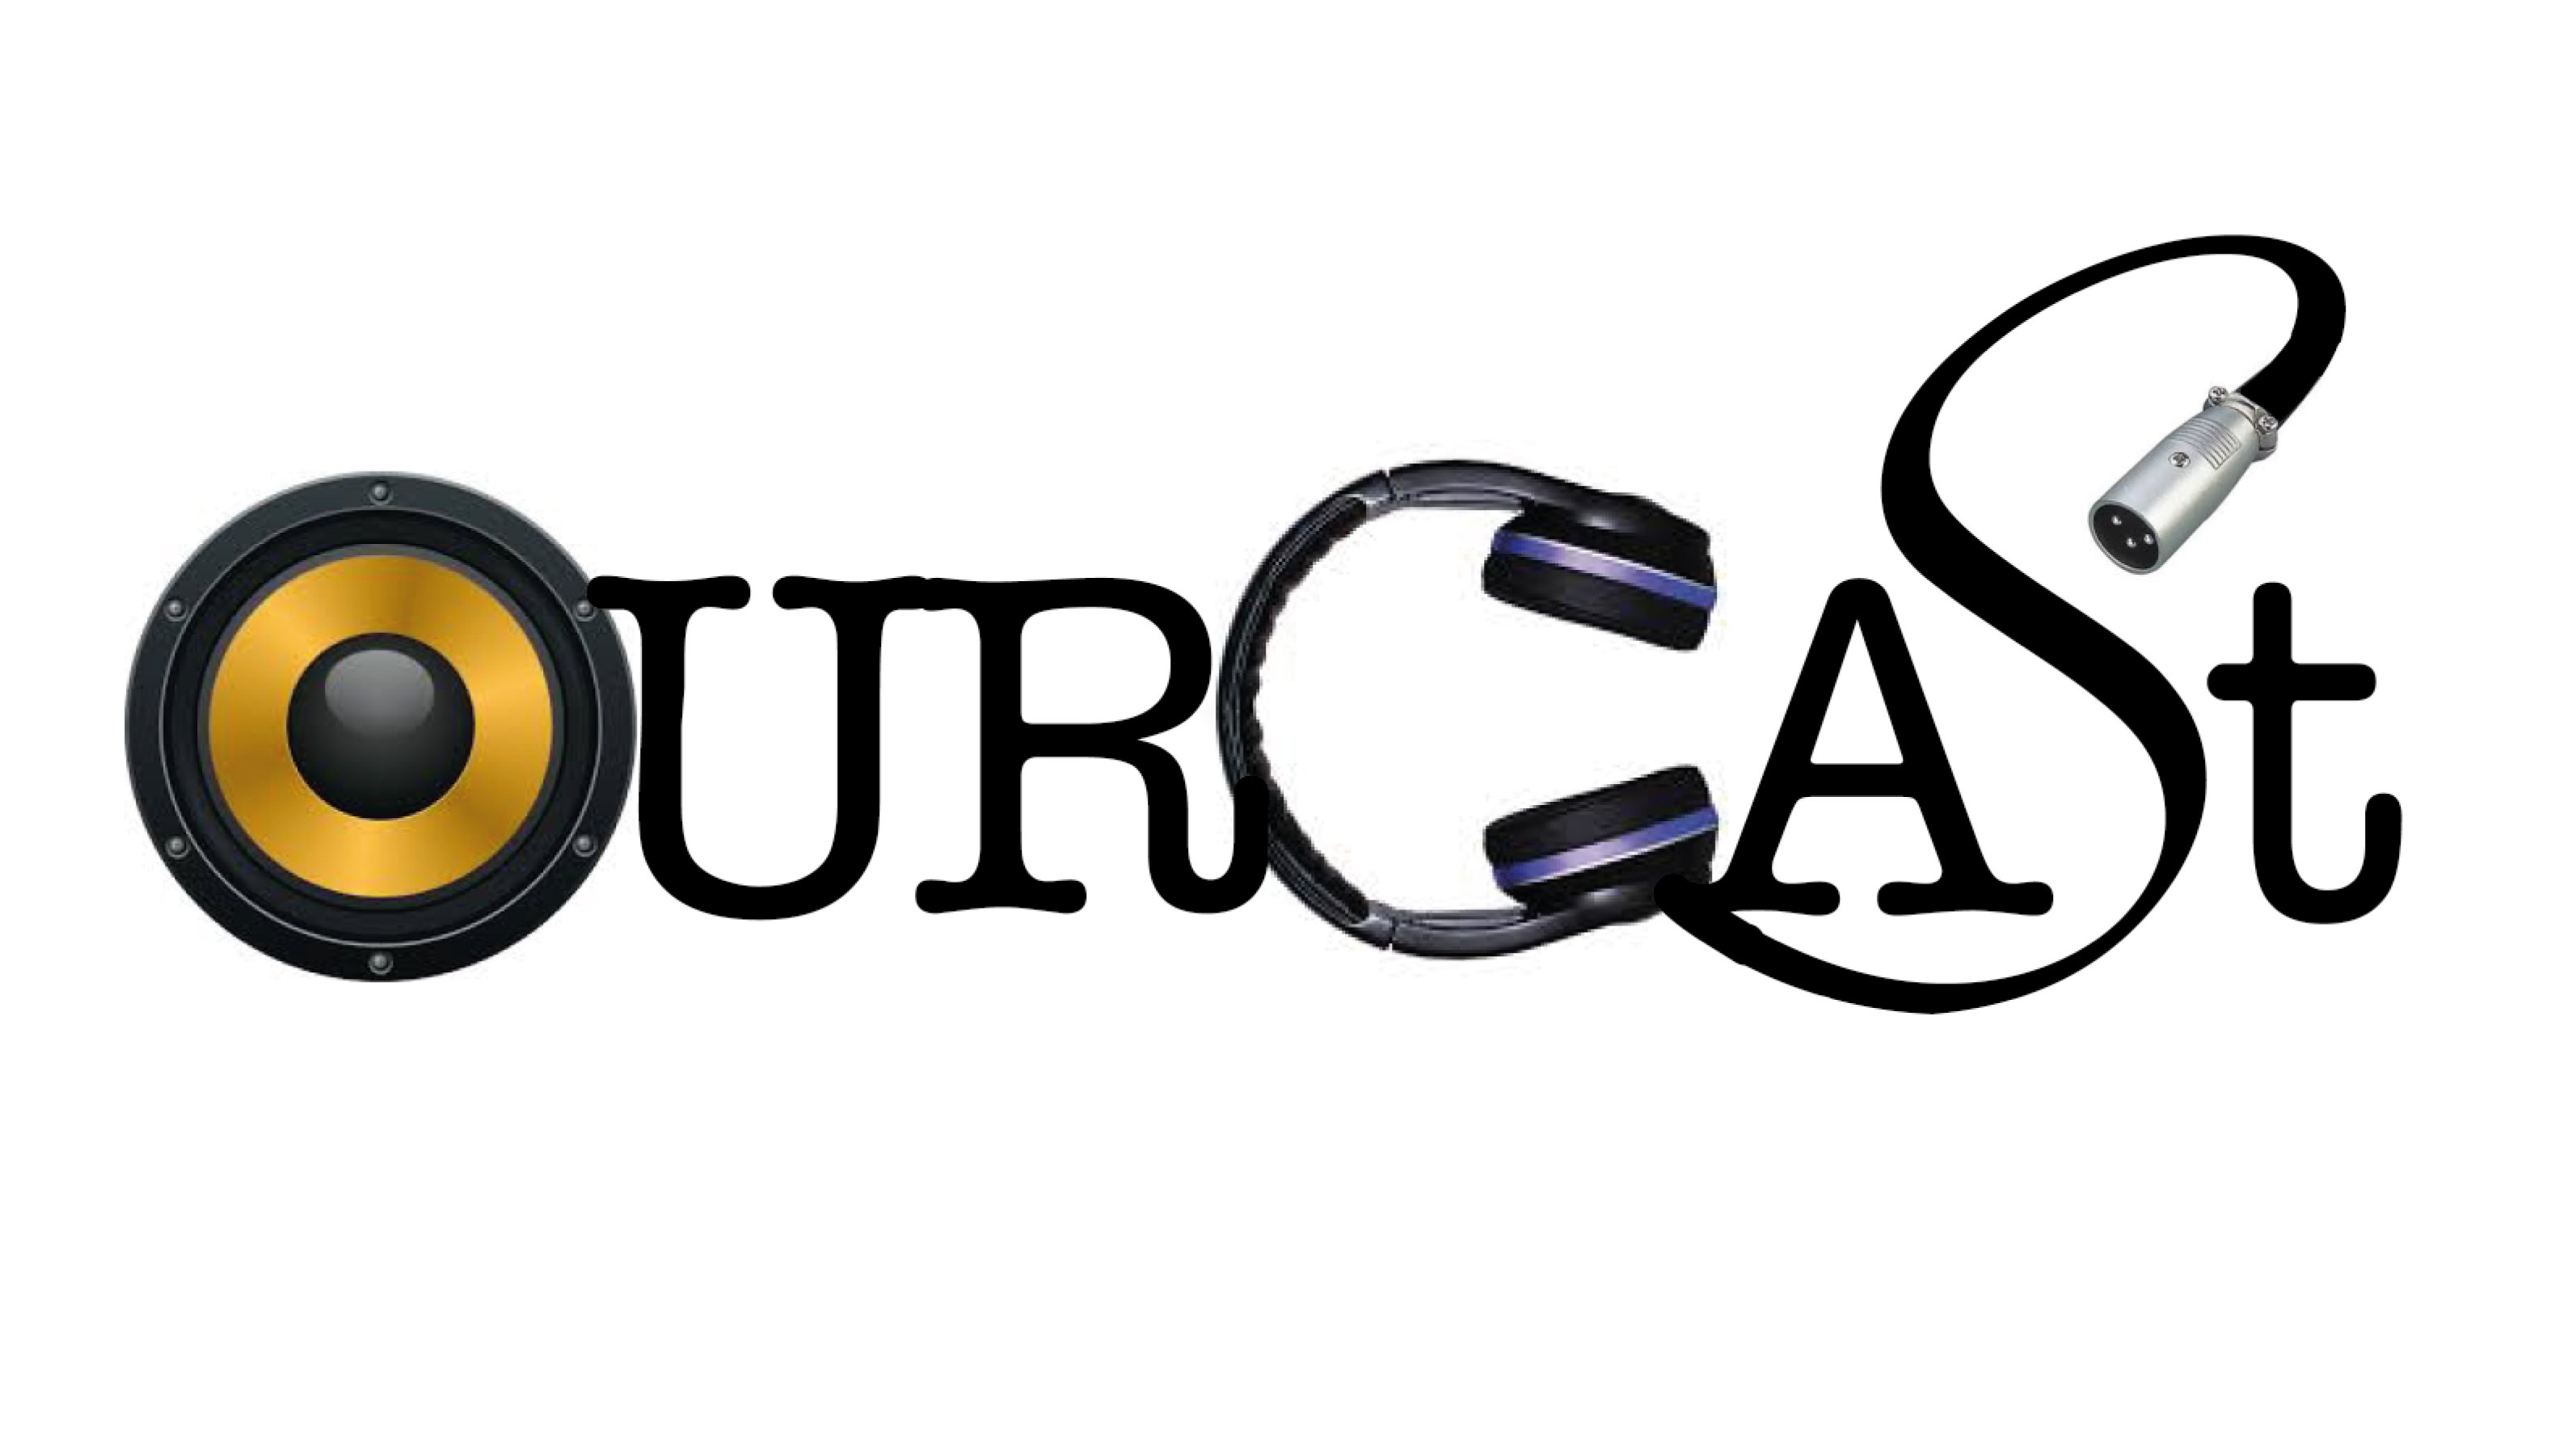 This Is OurCast